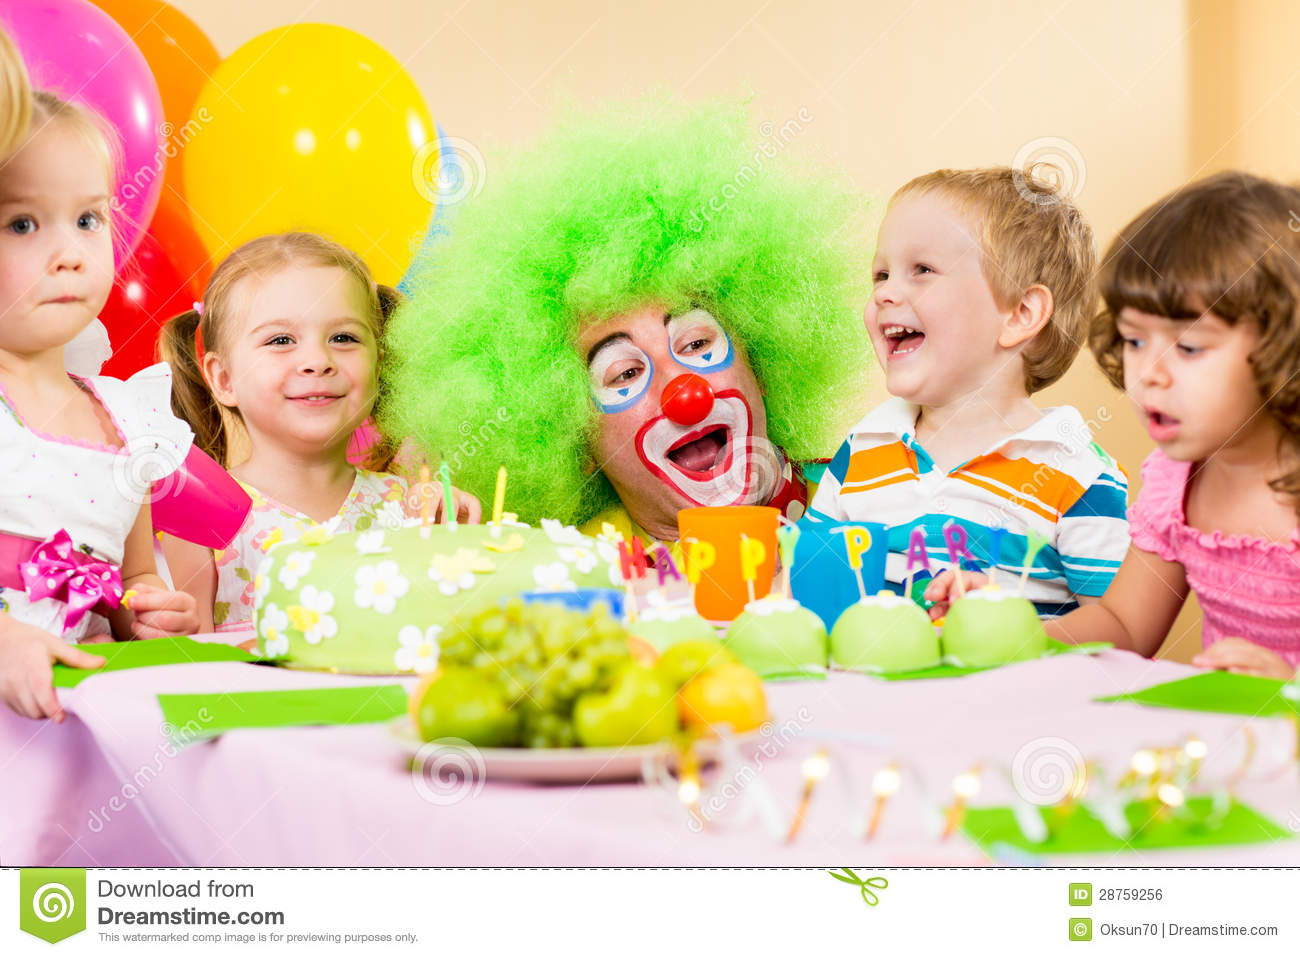 how to become a clown for parties